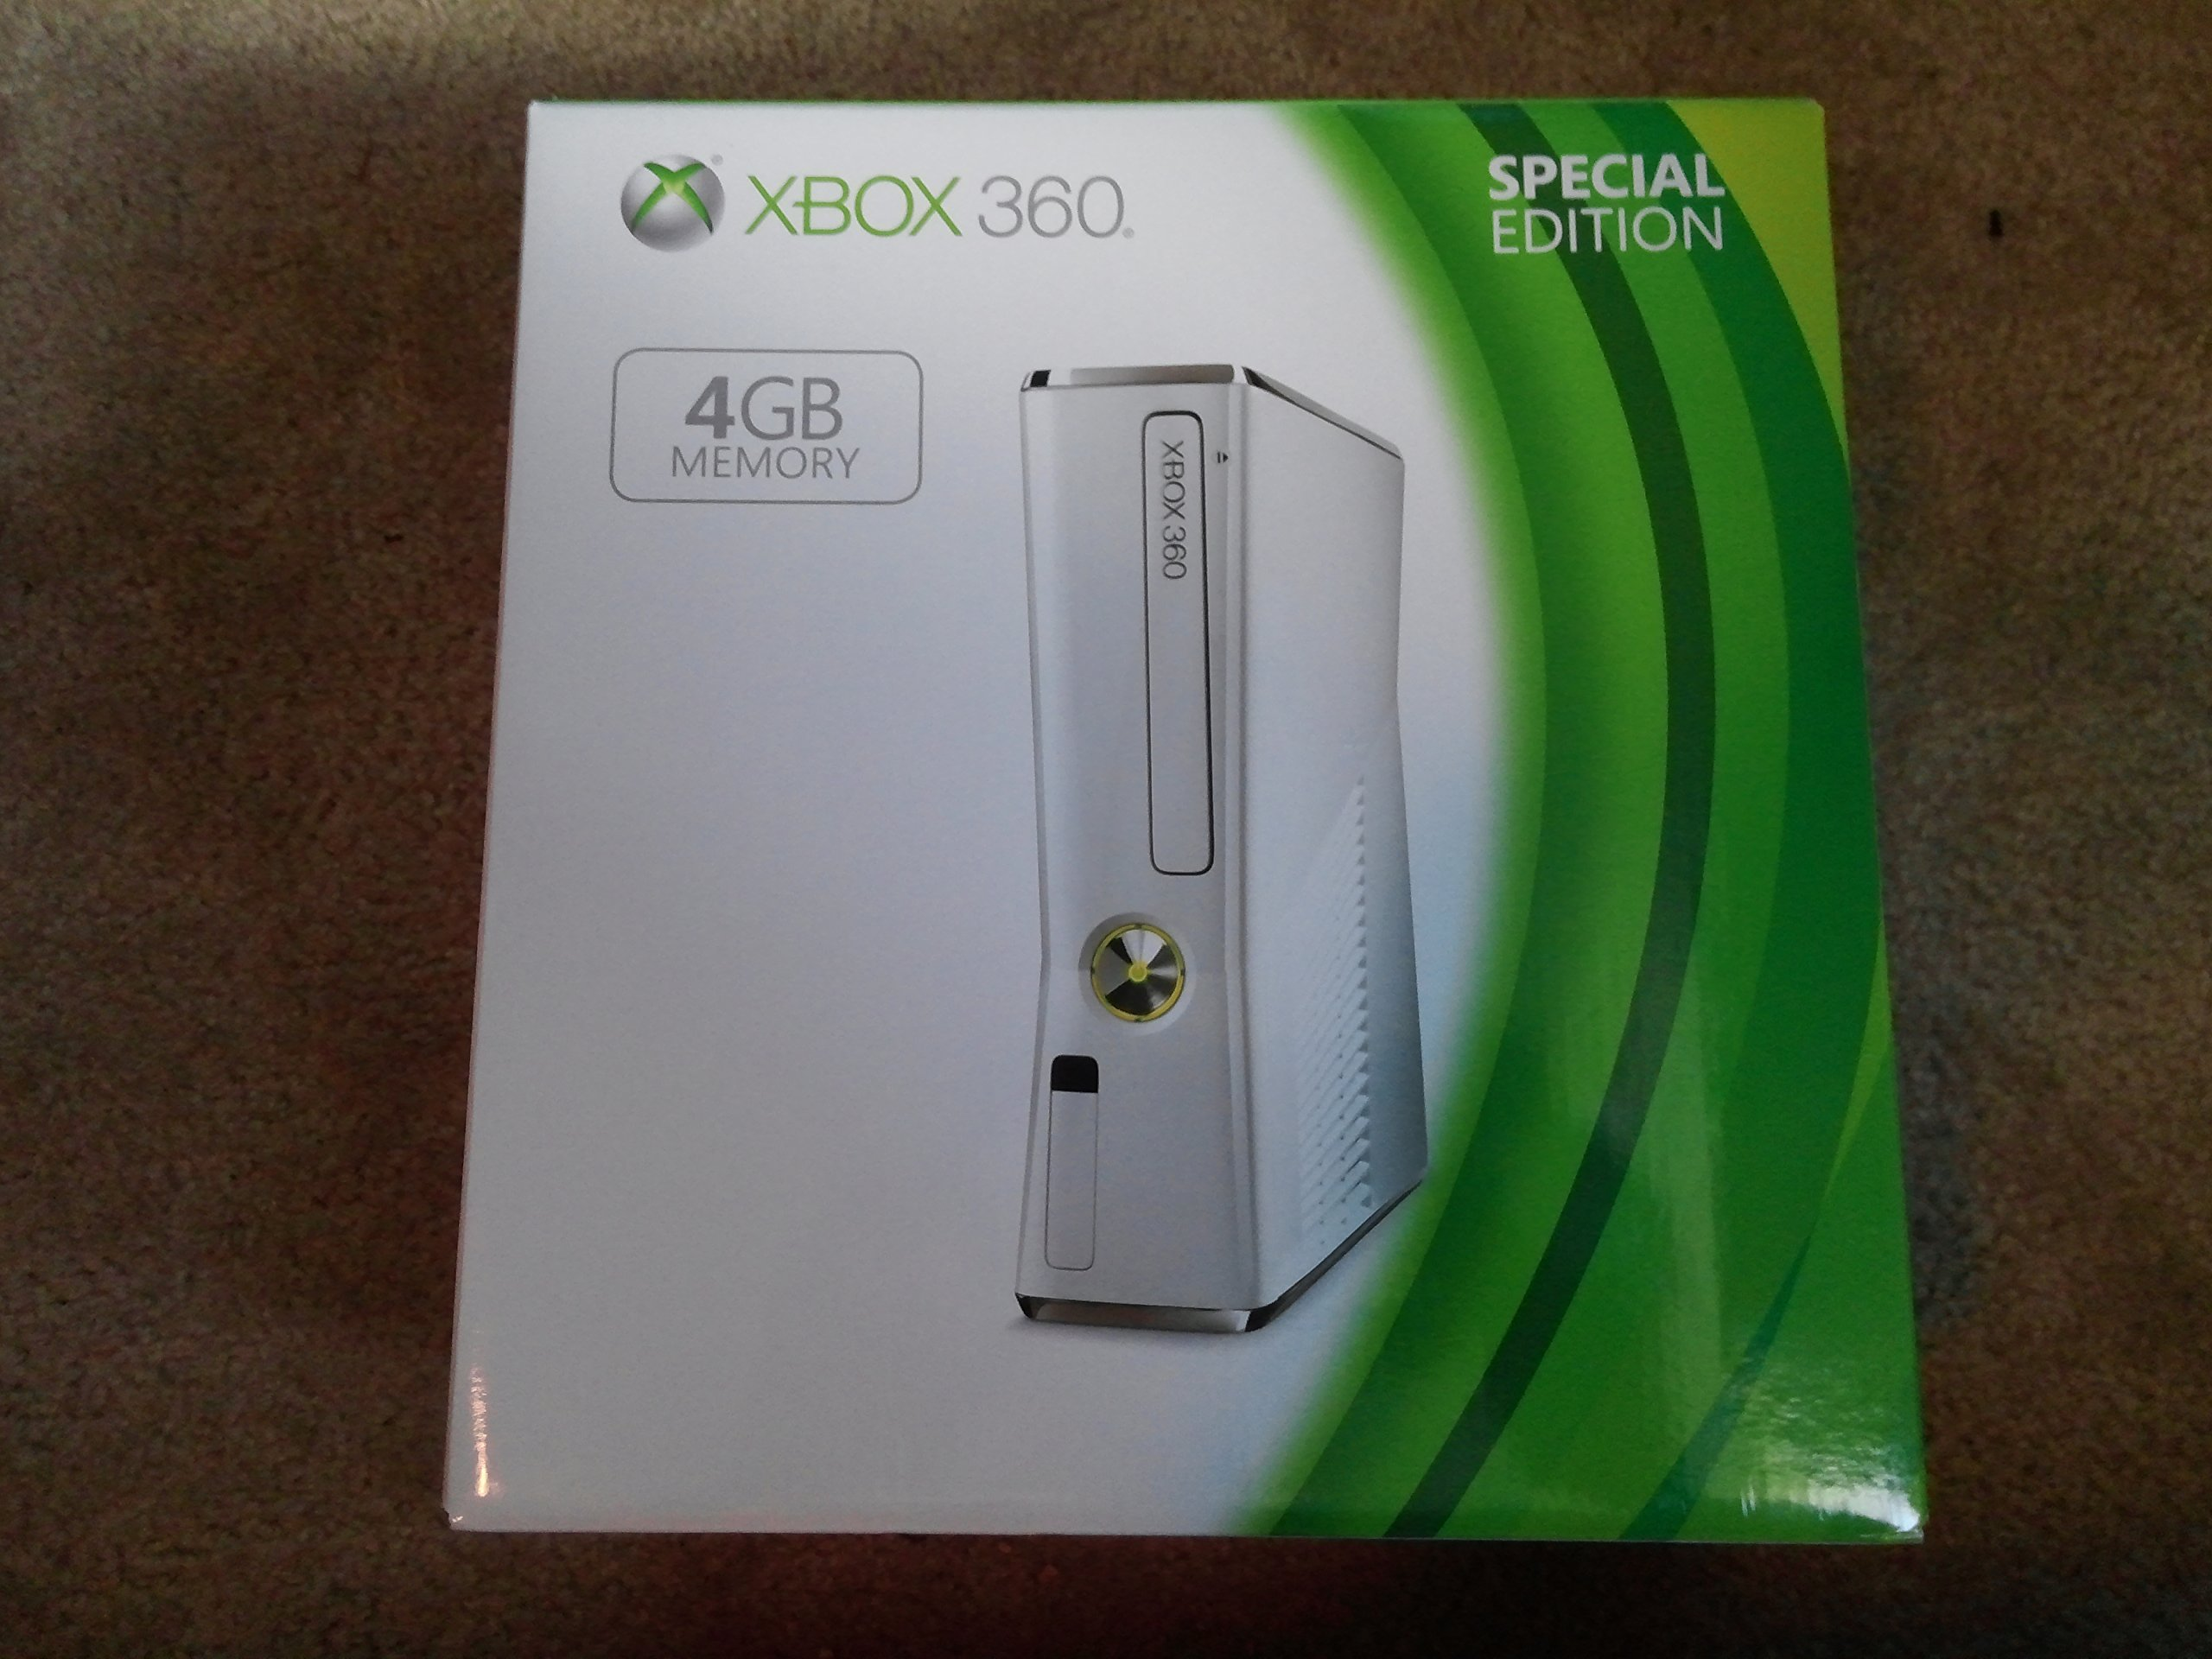 360: CONSOLE - SLIM WHITE - 4GB INTERNAL PLUS 20GB HDD - INCL: 1 WIRELESS CTRL KINECT SENSOR ; KINECT ADVENTURES COMPLETE GAME; HOOKUPS (USED)